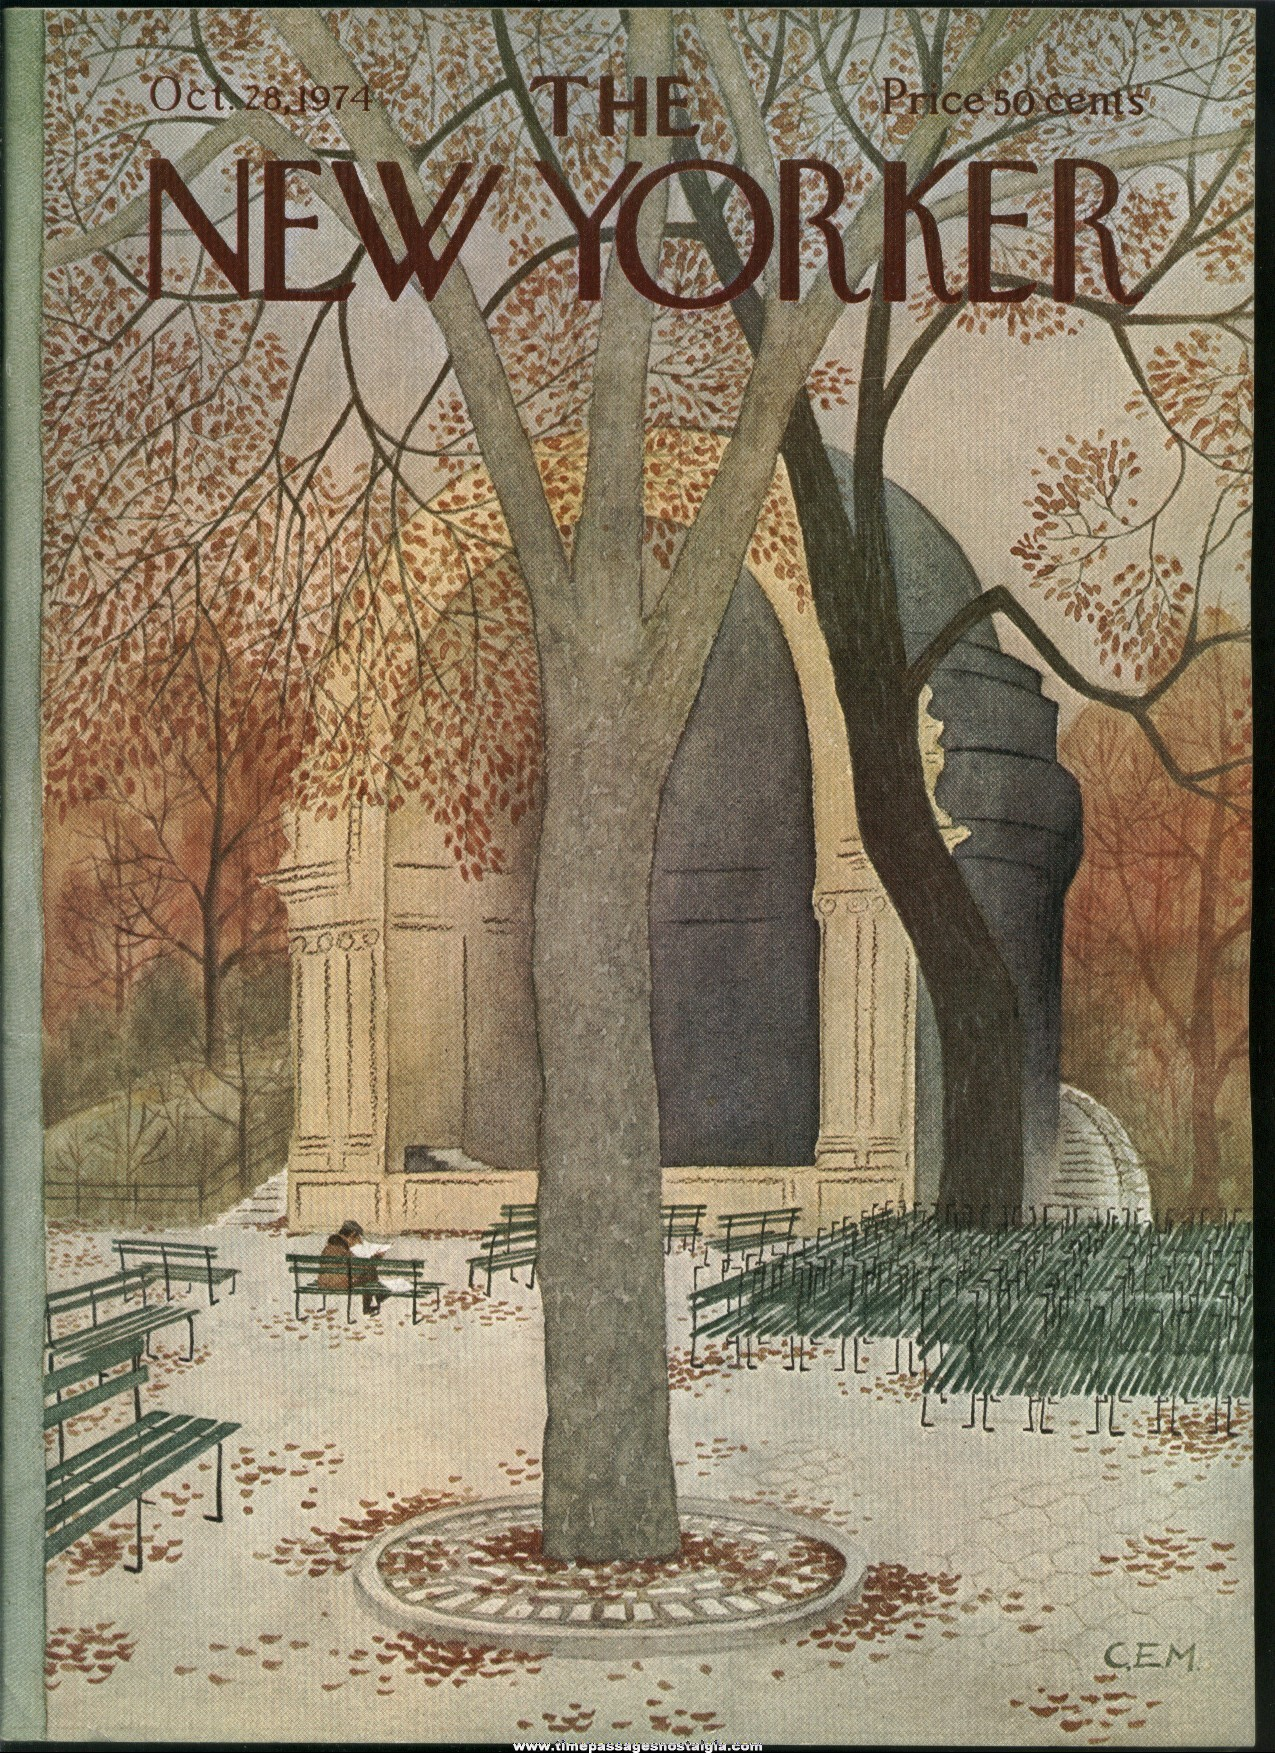 New Yorker Magazine - October 28, 1974 - Cover by Charles E. Martin